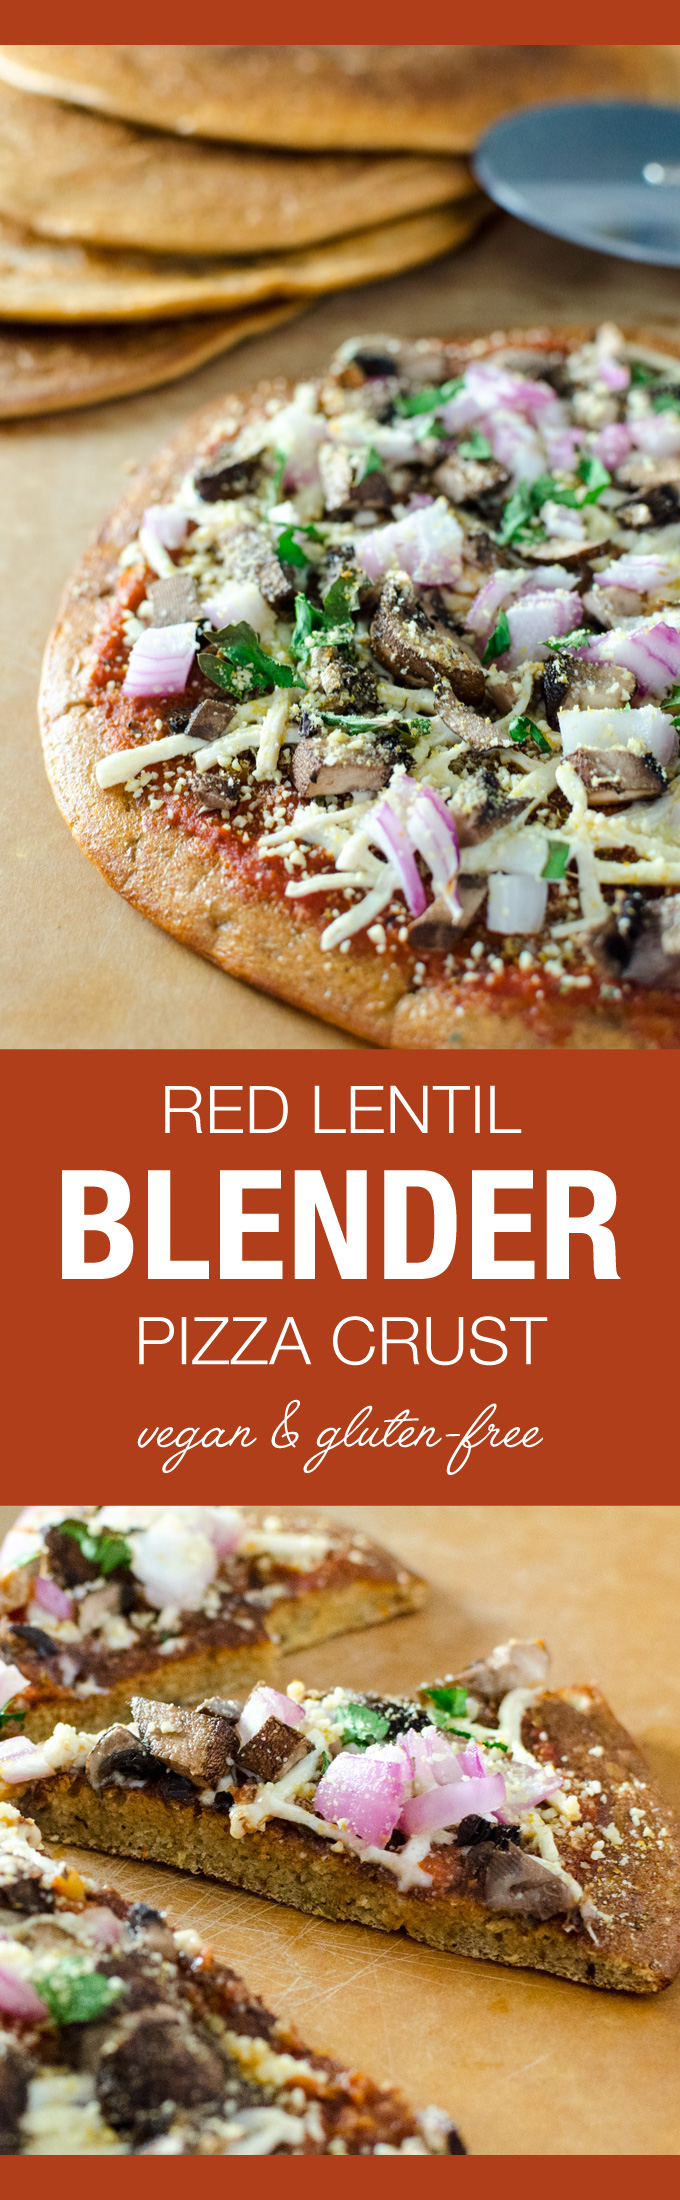 Red-Lentil-Blender-Pizza-Crust